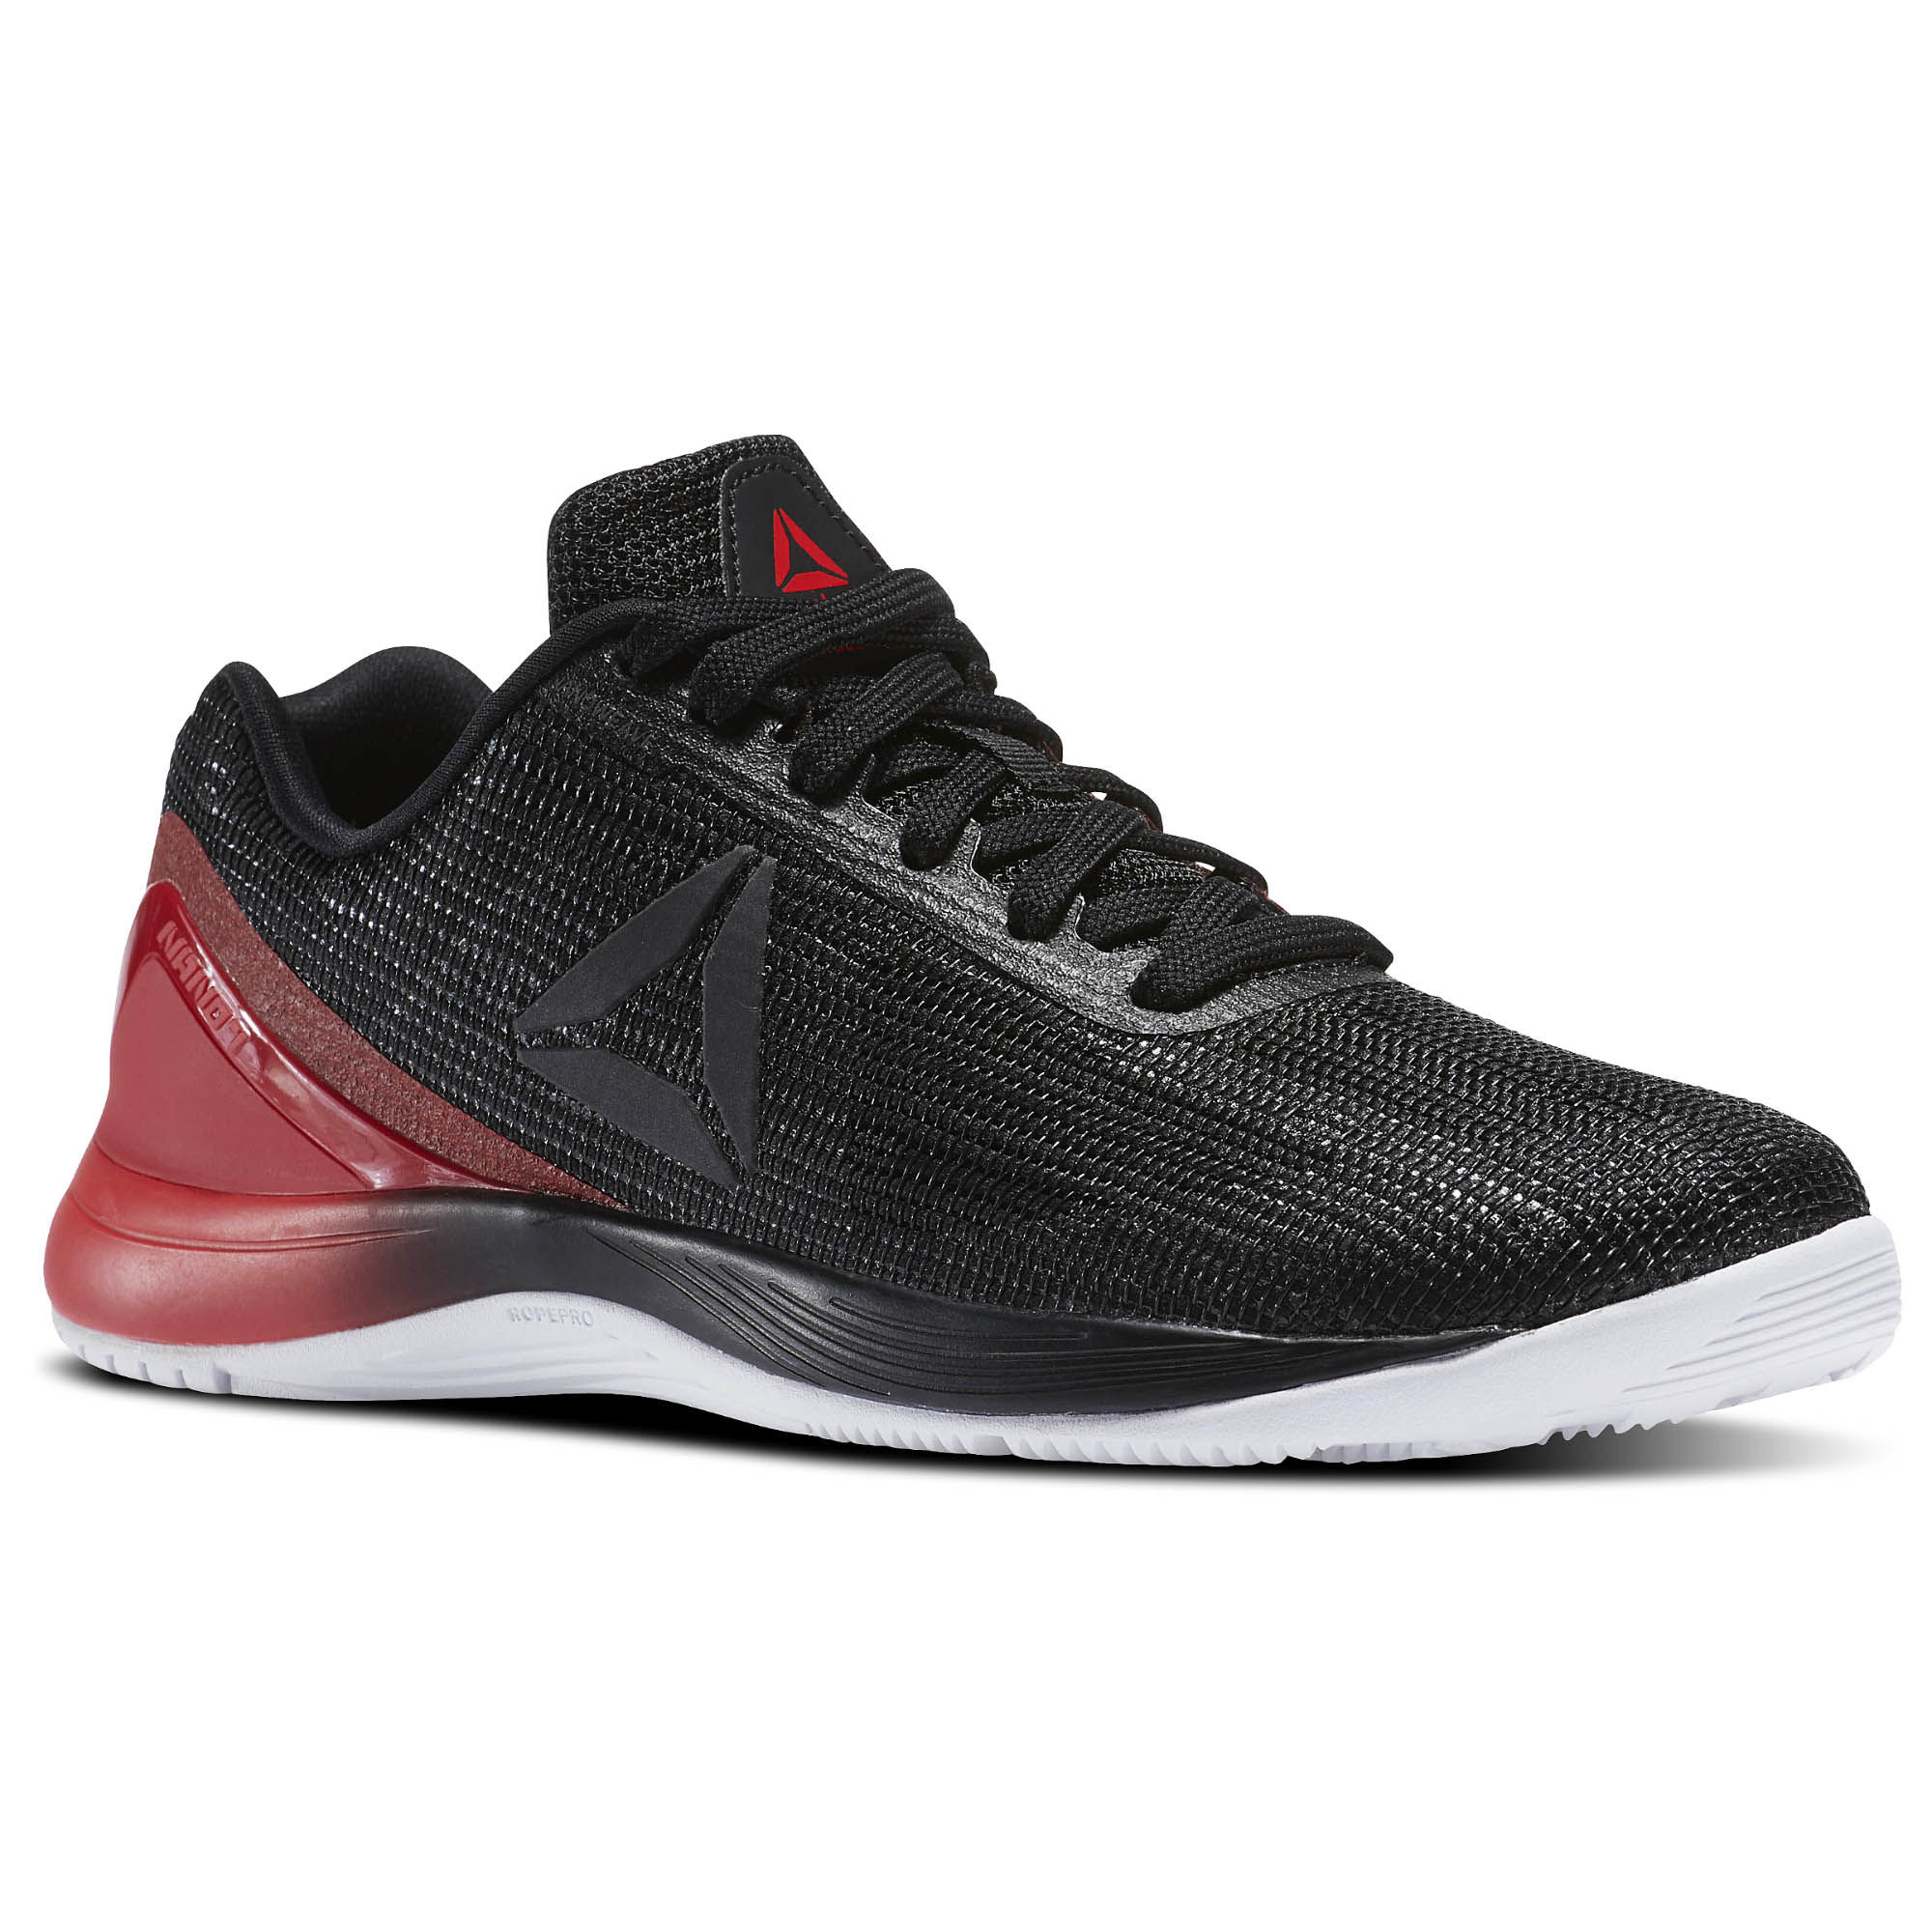 Primary Nano School Scarpe9 Crossfit 14Outlet Reebok 7 UVzMpS